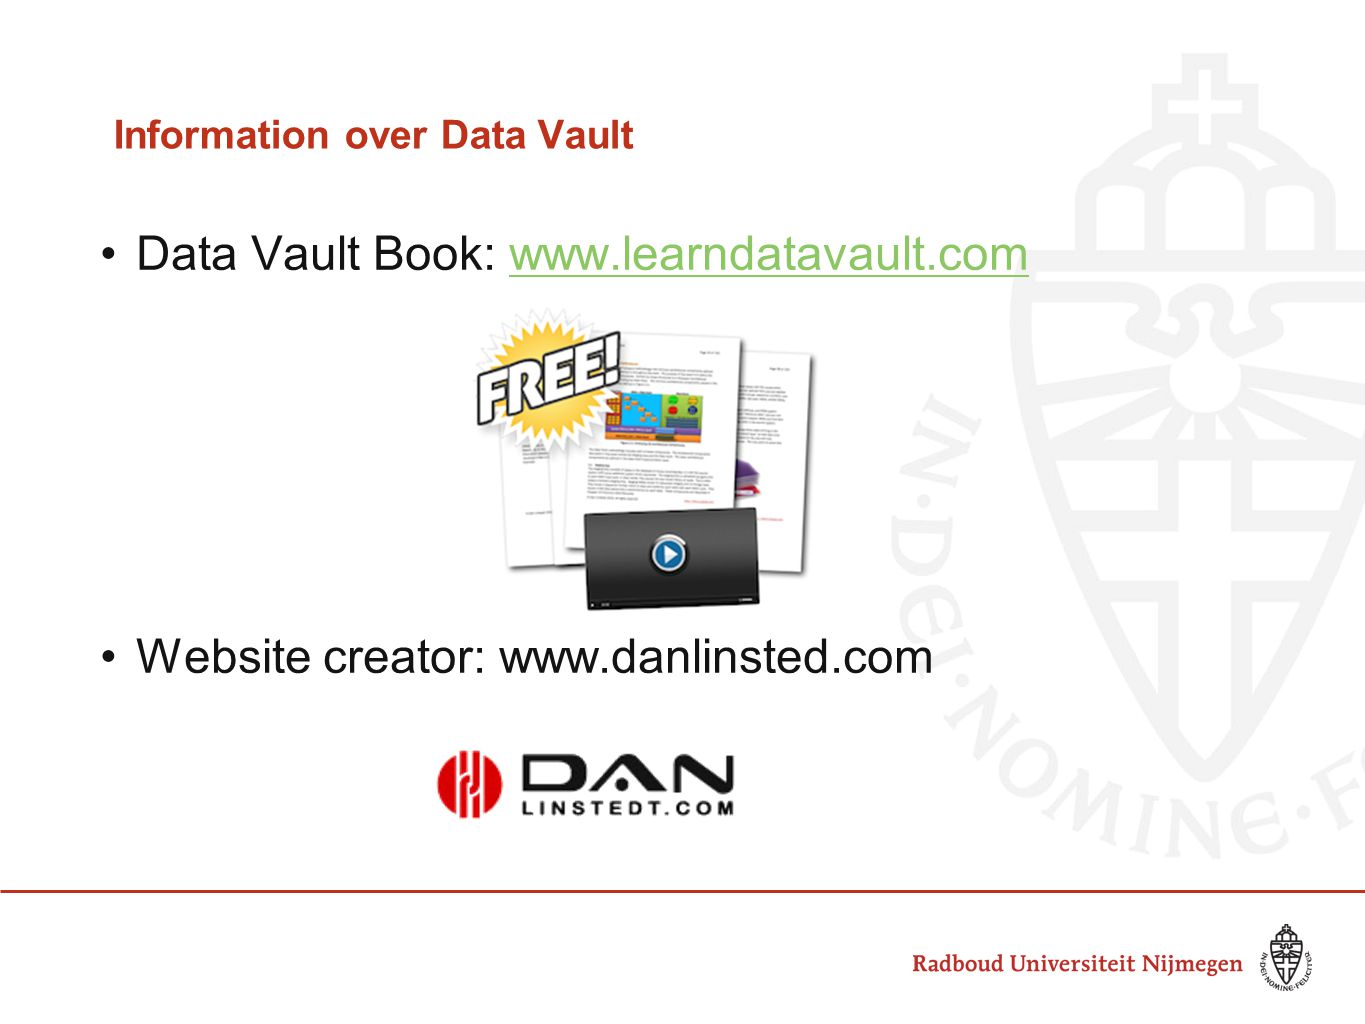 Information over Data Vault